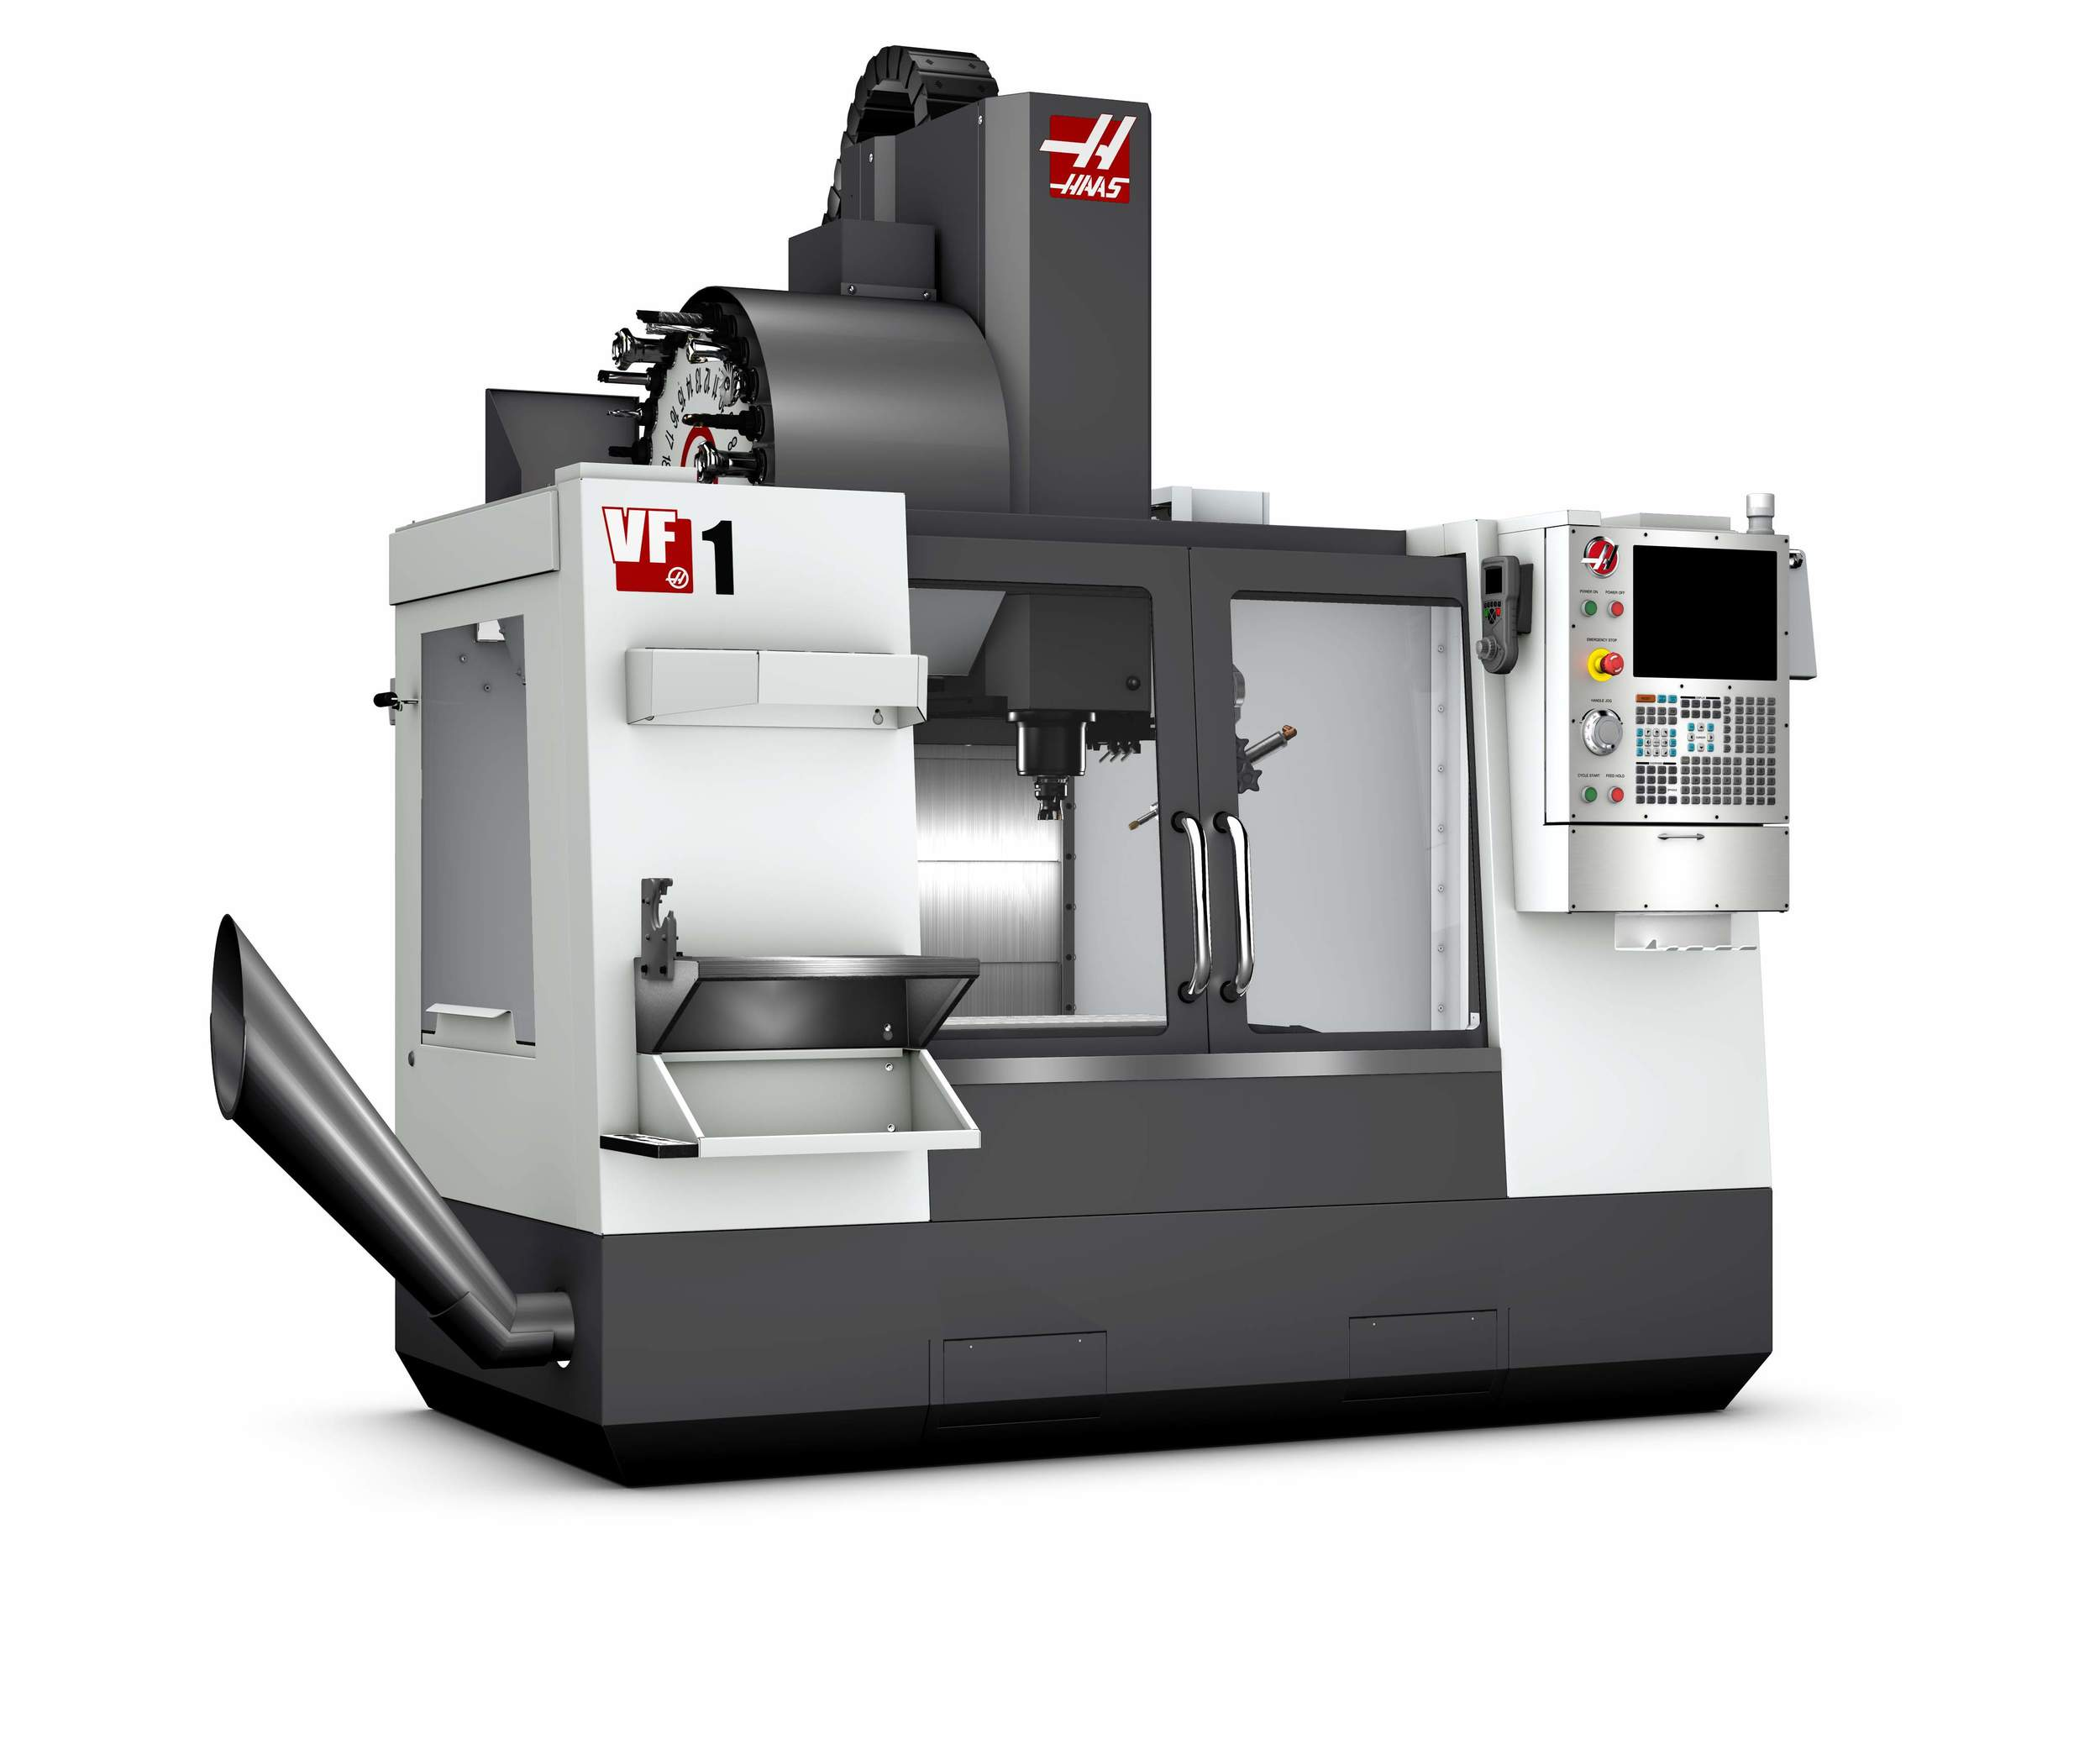 HAAS VF 1 Machining Center - 20 HP Motor, High speed Axis Drives, Rigid Tapping and 20-Station Tool Changer